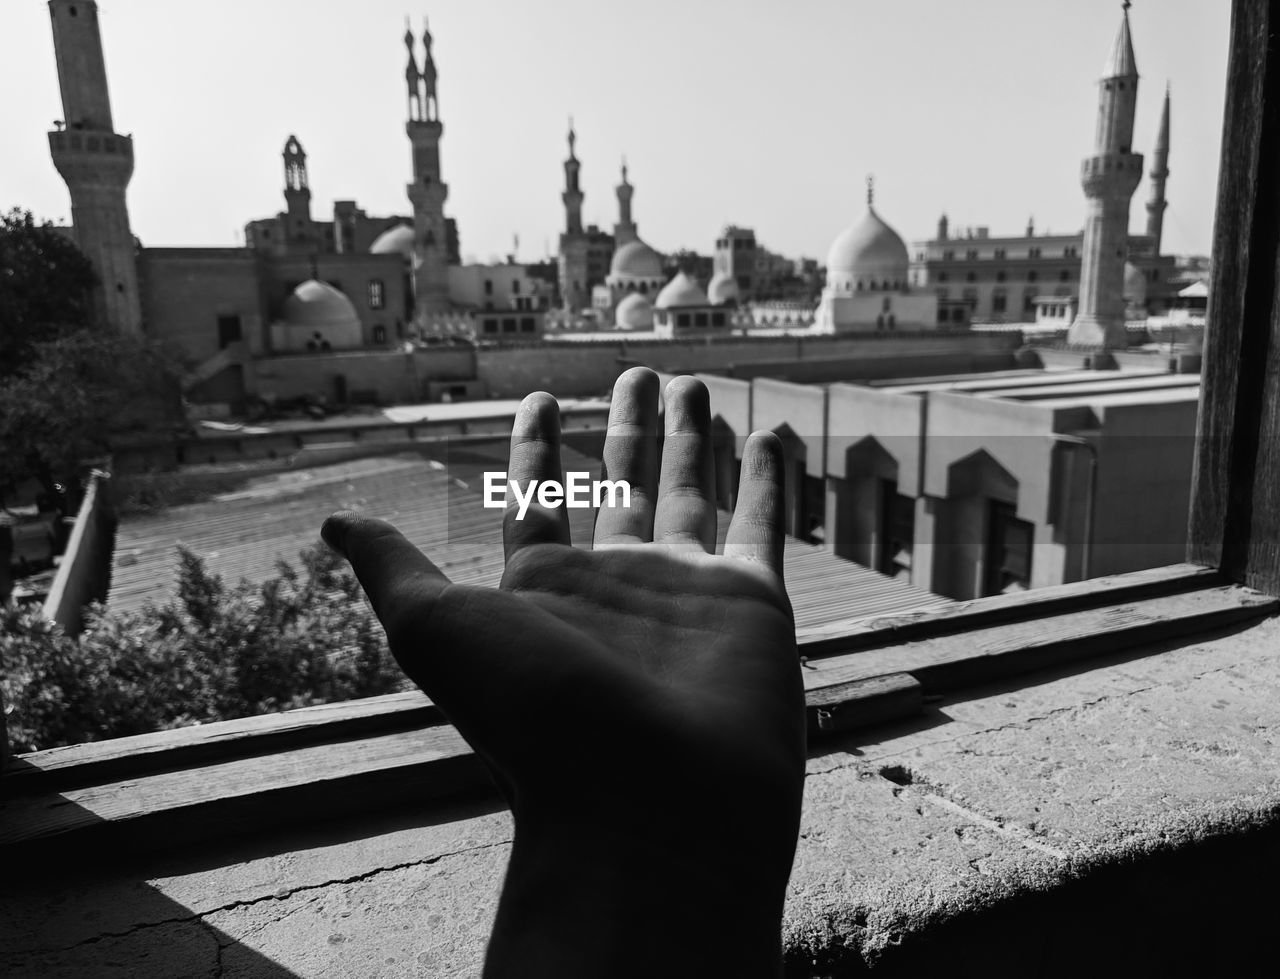 human hand, architecture, built structure, hand, one person, building exterior, human body part, place of worship, human finger, city, finger, building, body part, real people, lifestyles, personal perspective, nature, religion, day, spirituality, outdoors, spire